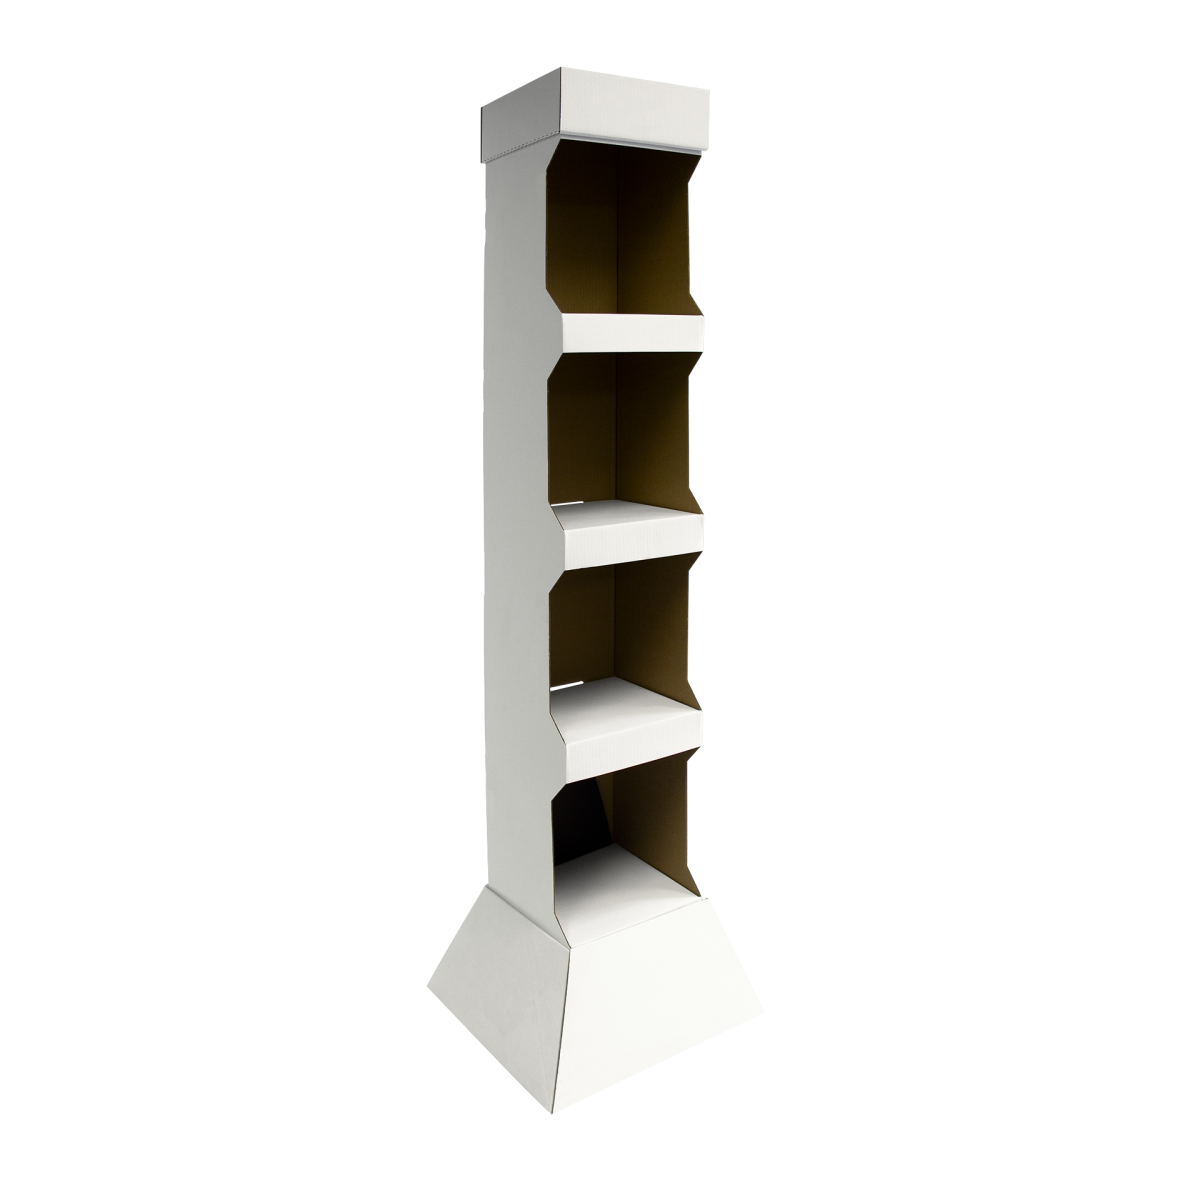 Cardboard floor display with shelves - white